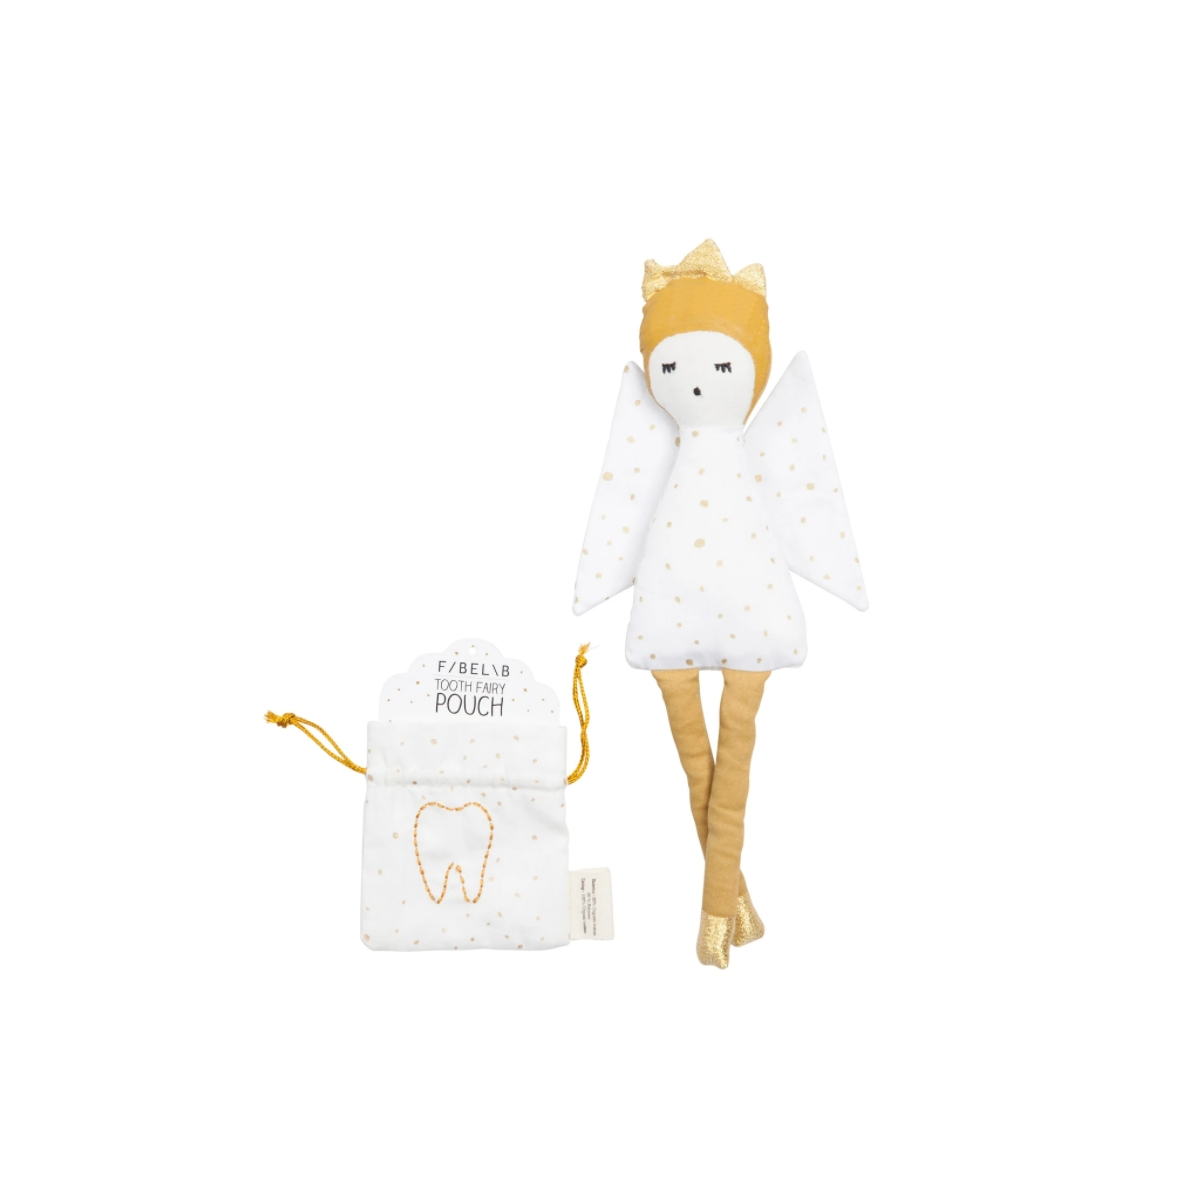 Fabelab Dream Friend Toy-Toothfairy (2020)